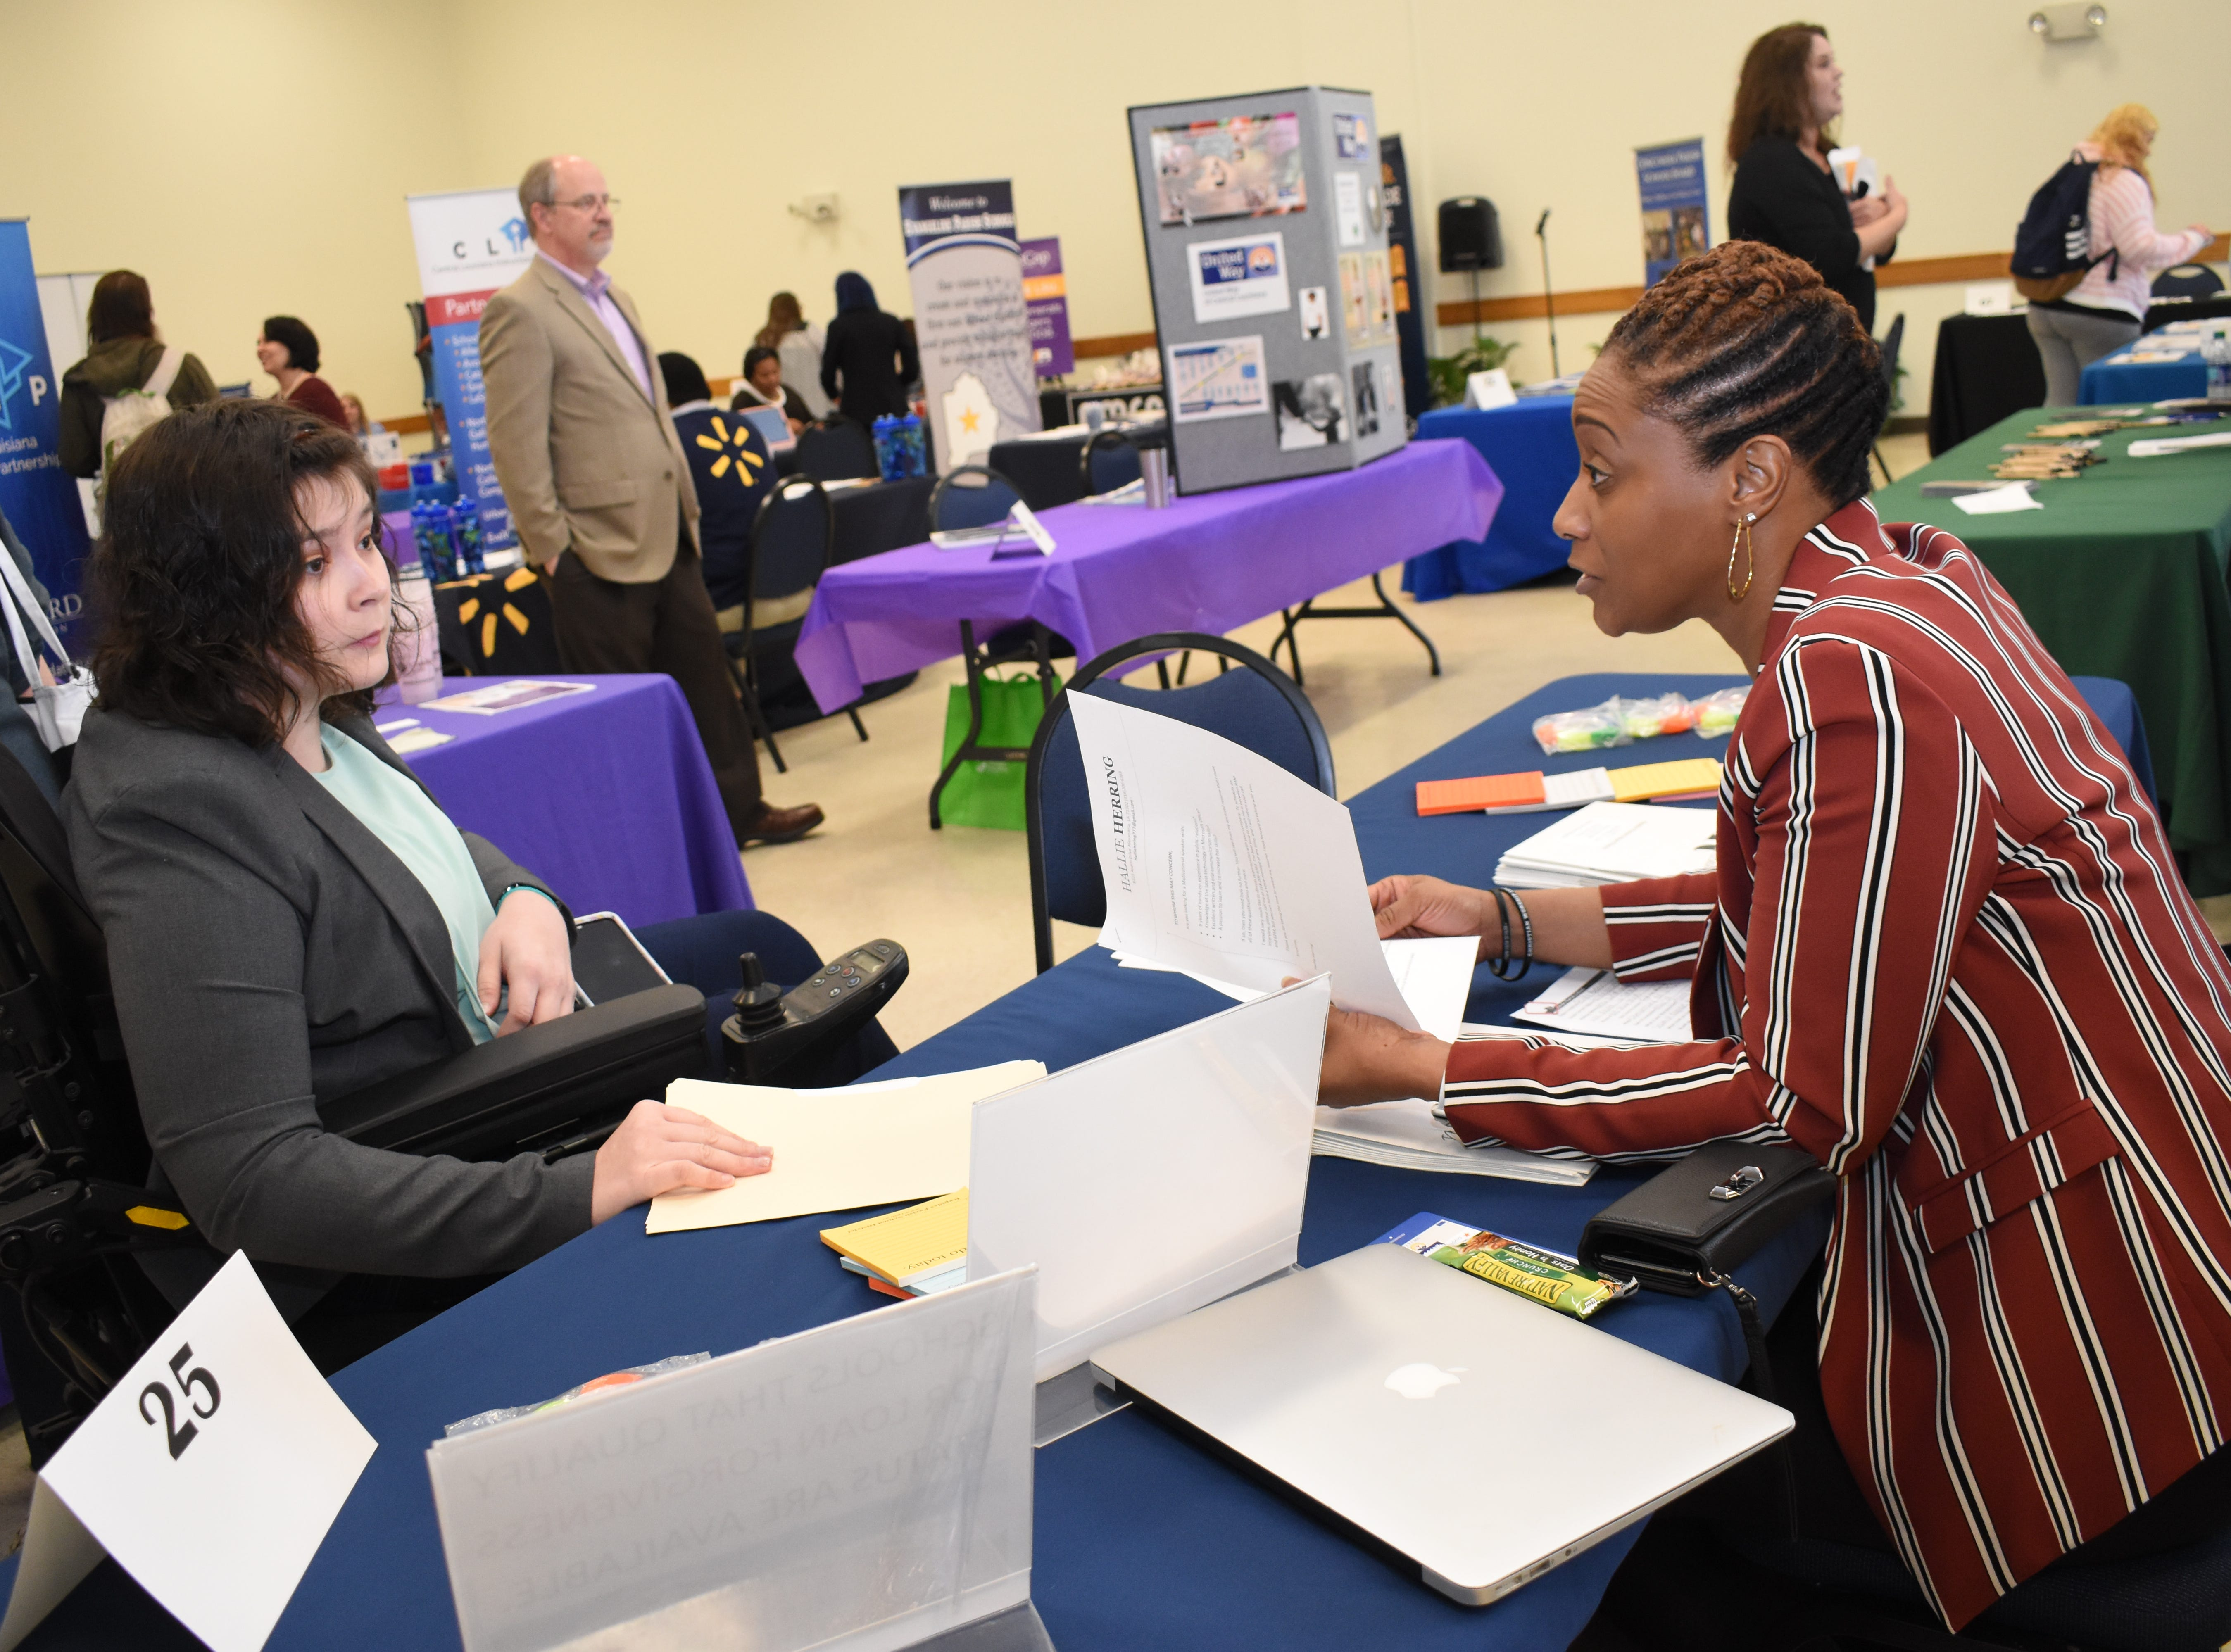 Hallie Herring (left), an LSUA senior, talks to Naomi Jones, director of human resources for the Rapides Parish School Board, at the Spring Career Fair held Tuesday, March 12, 2019 on the LSUA campus. About 40 businesses such as those involved in education, health care, non-profits and law enforcement were on hand to talk to students and others about job opportunities.